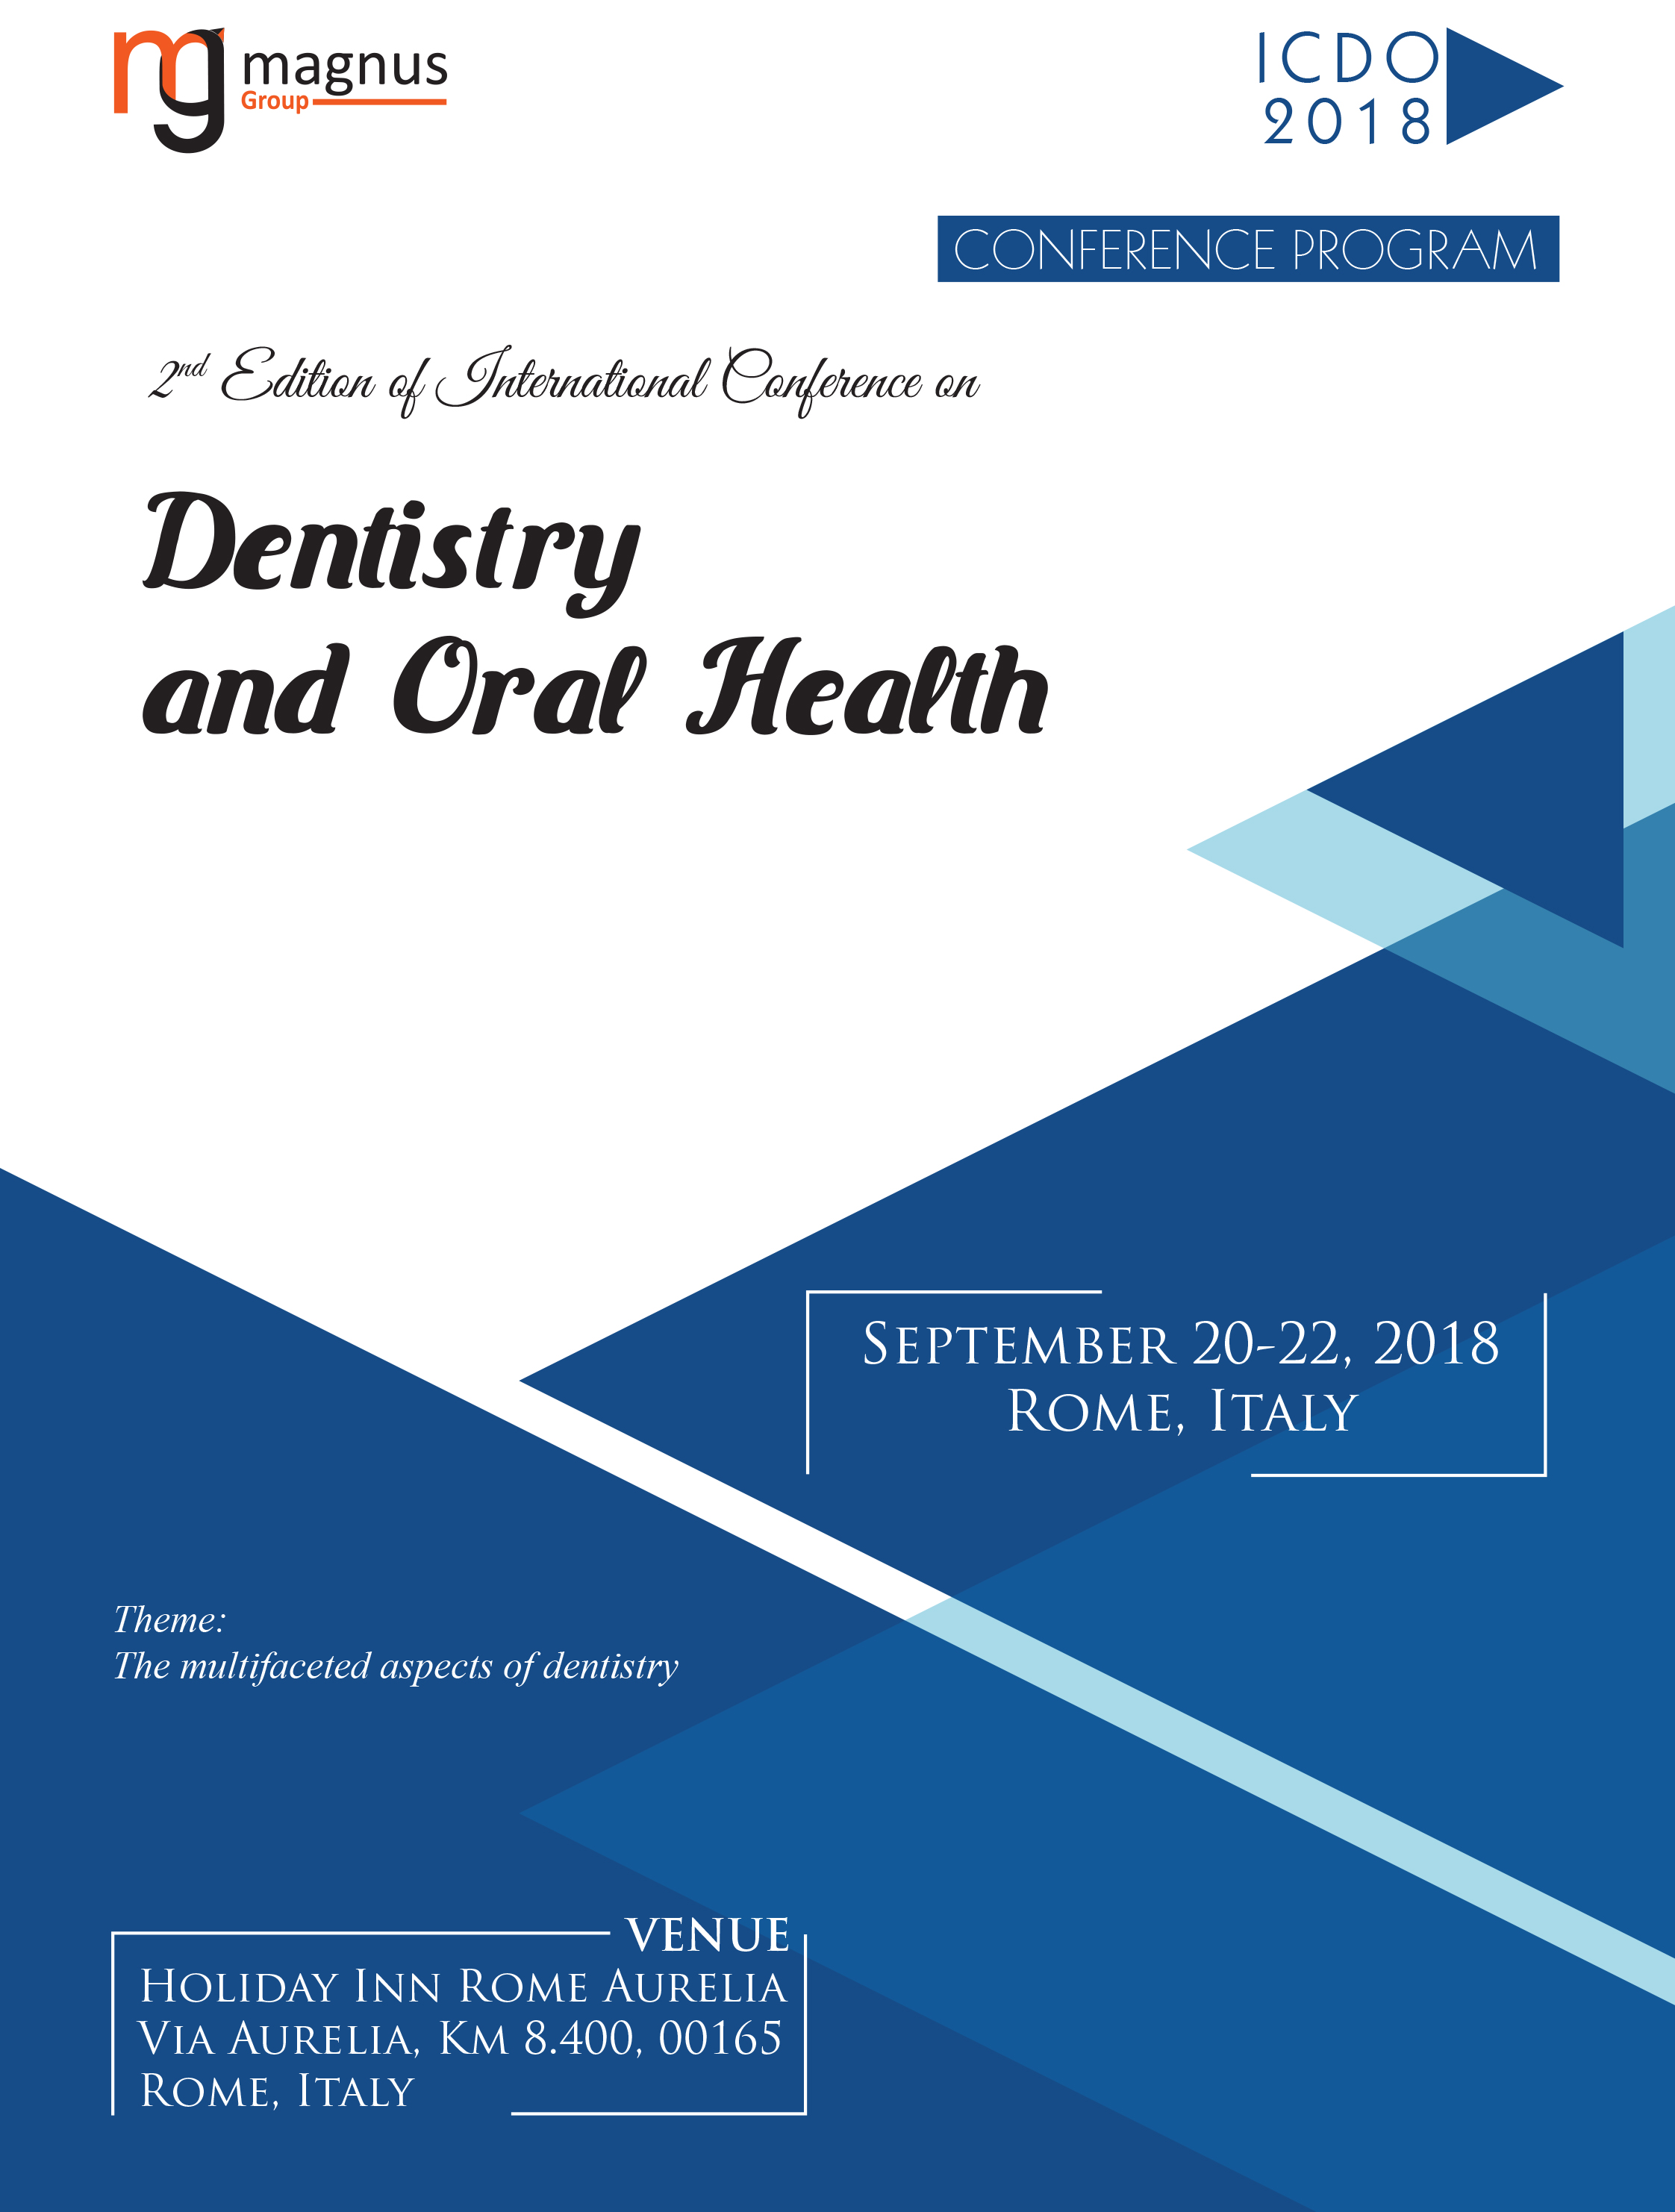 2nd Edition of International Conference on Dentistry and Oral Health Program